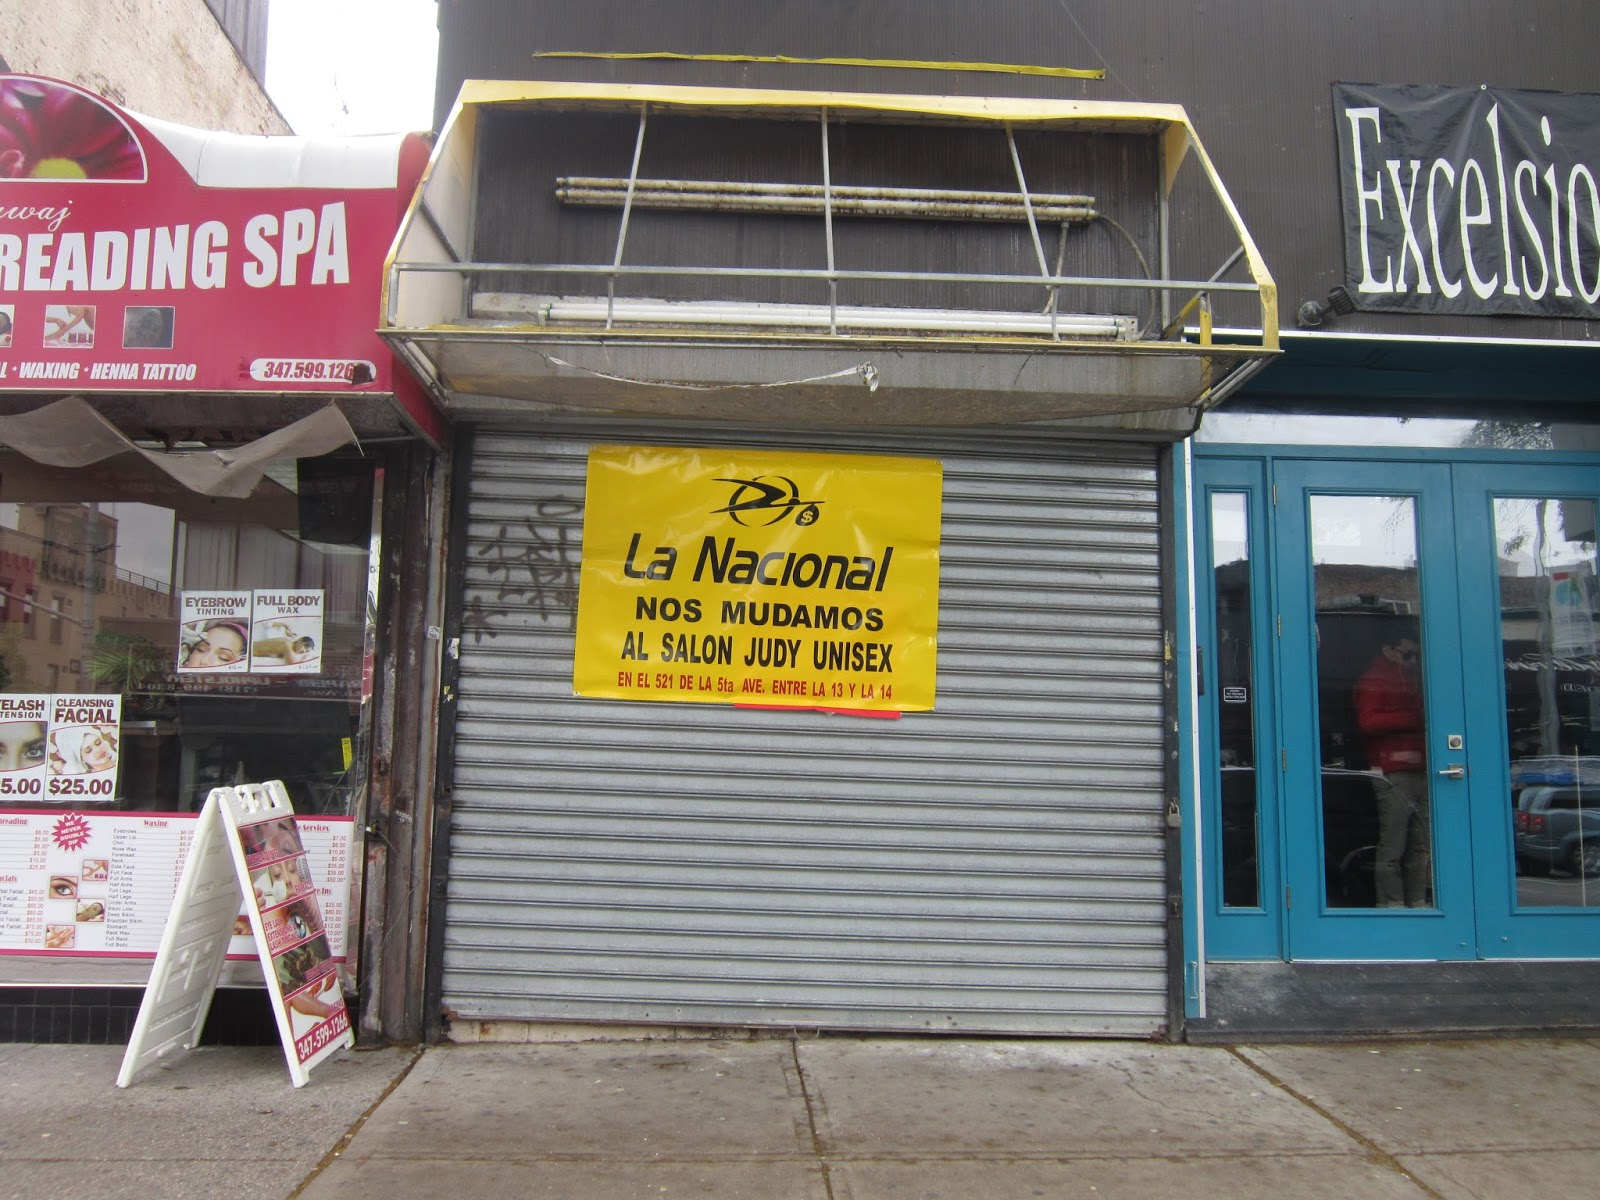 Money Transfer Service La Nacional At 561 Fifth Which Was Recently Damaged By Fire Is Moving Temporarily Down Into Judy Uni 13th 14th